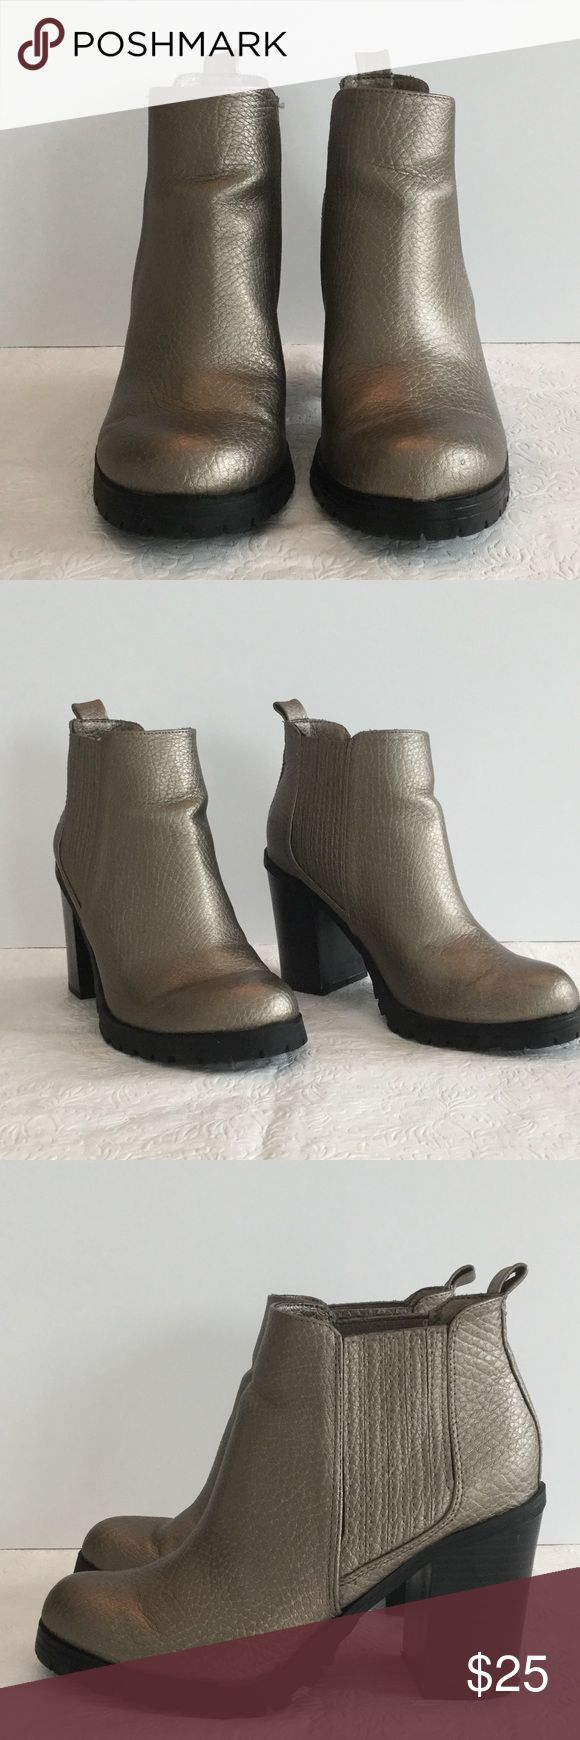 Metallic ankle boots Sam & Libby boots. Gently worn and in great shape. A couple of small scratches on the heel. Sam & Libby Shoes Ankle Boots & Booties